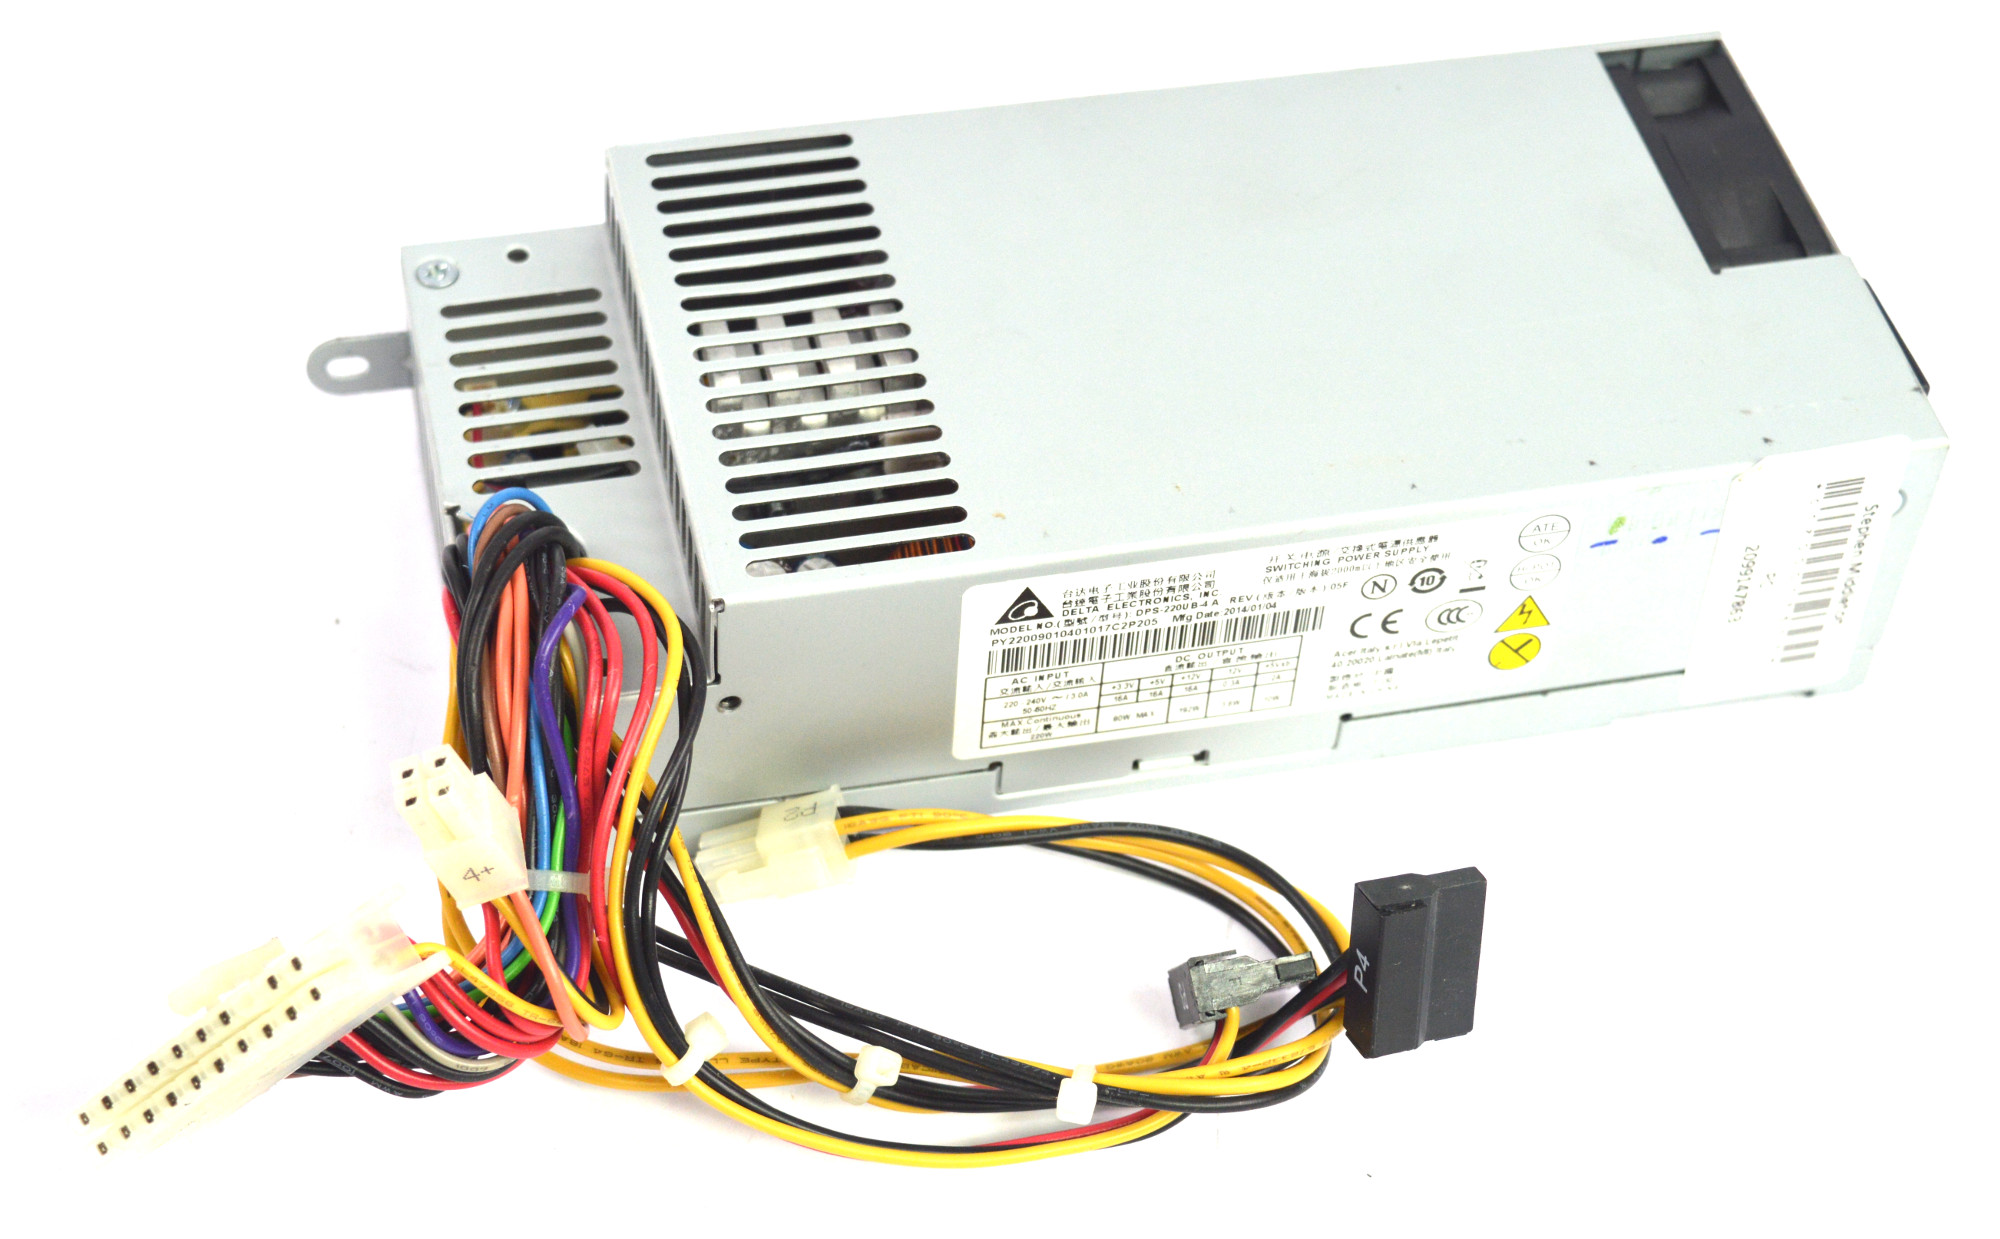 Delta DPS-220UB-4 A 220W Switching Power Supply